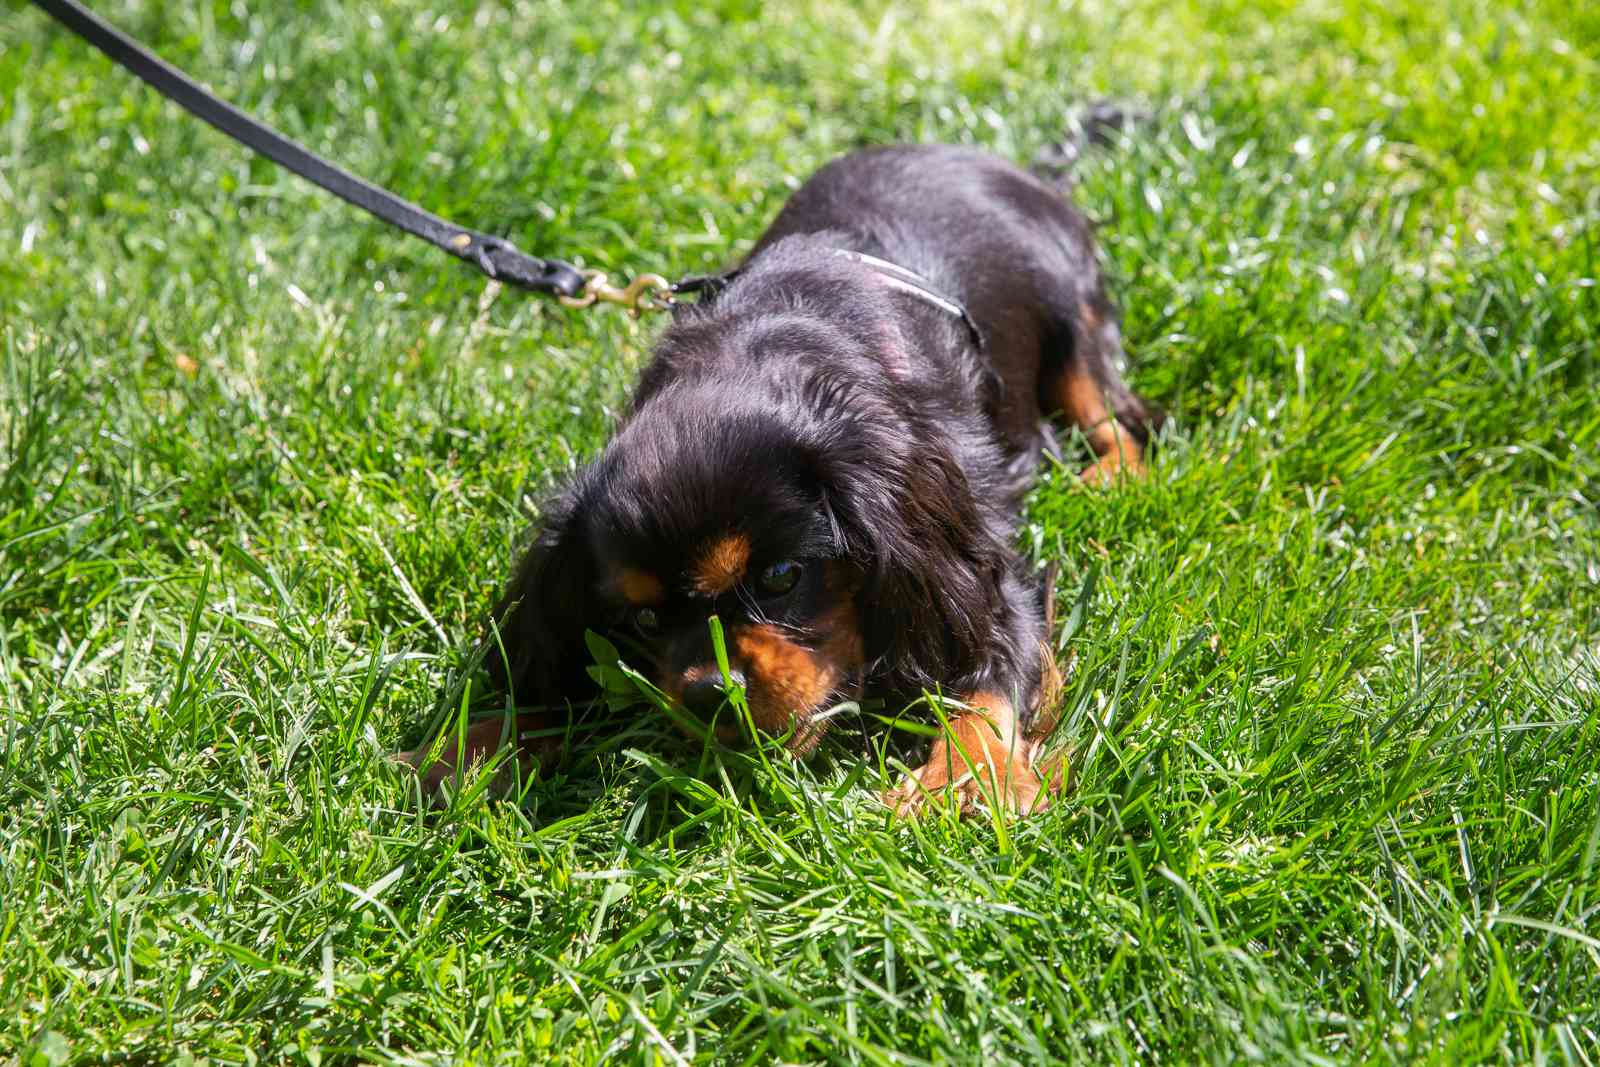 Brown and black puppy on leash grass grazing